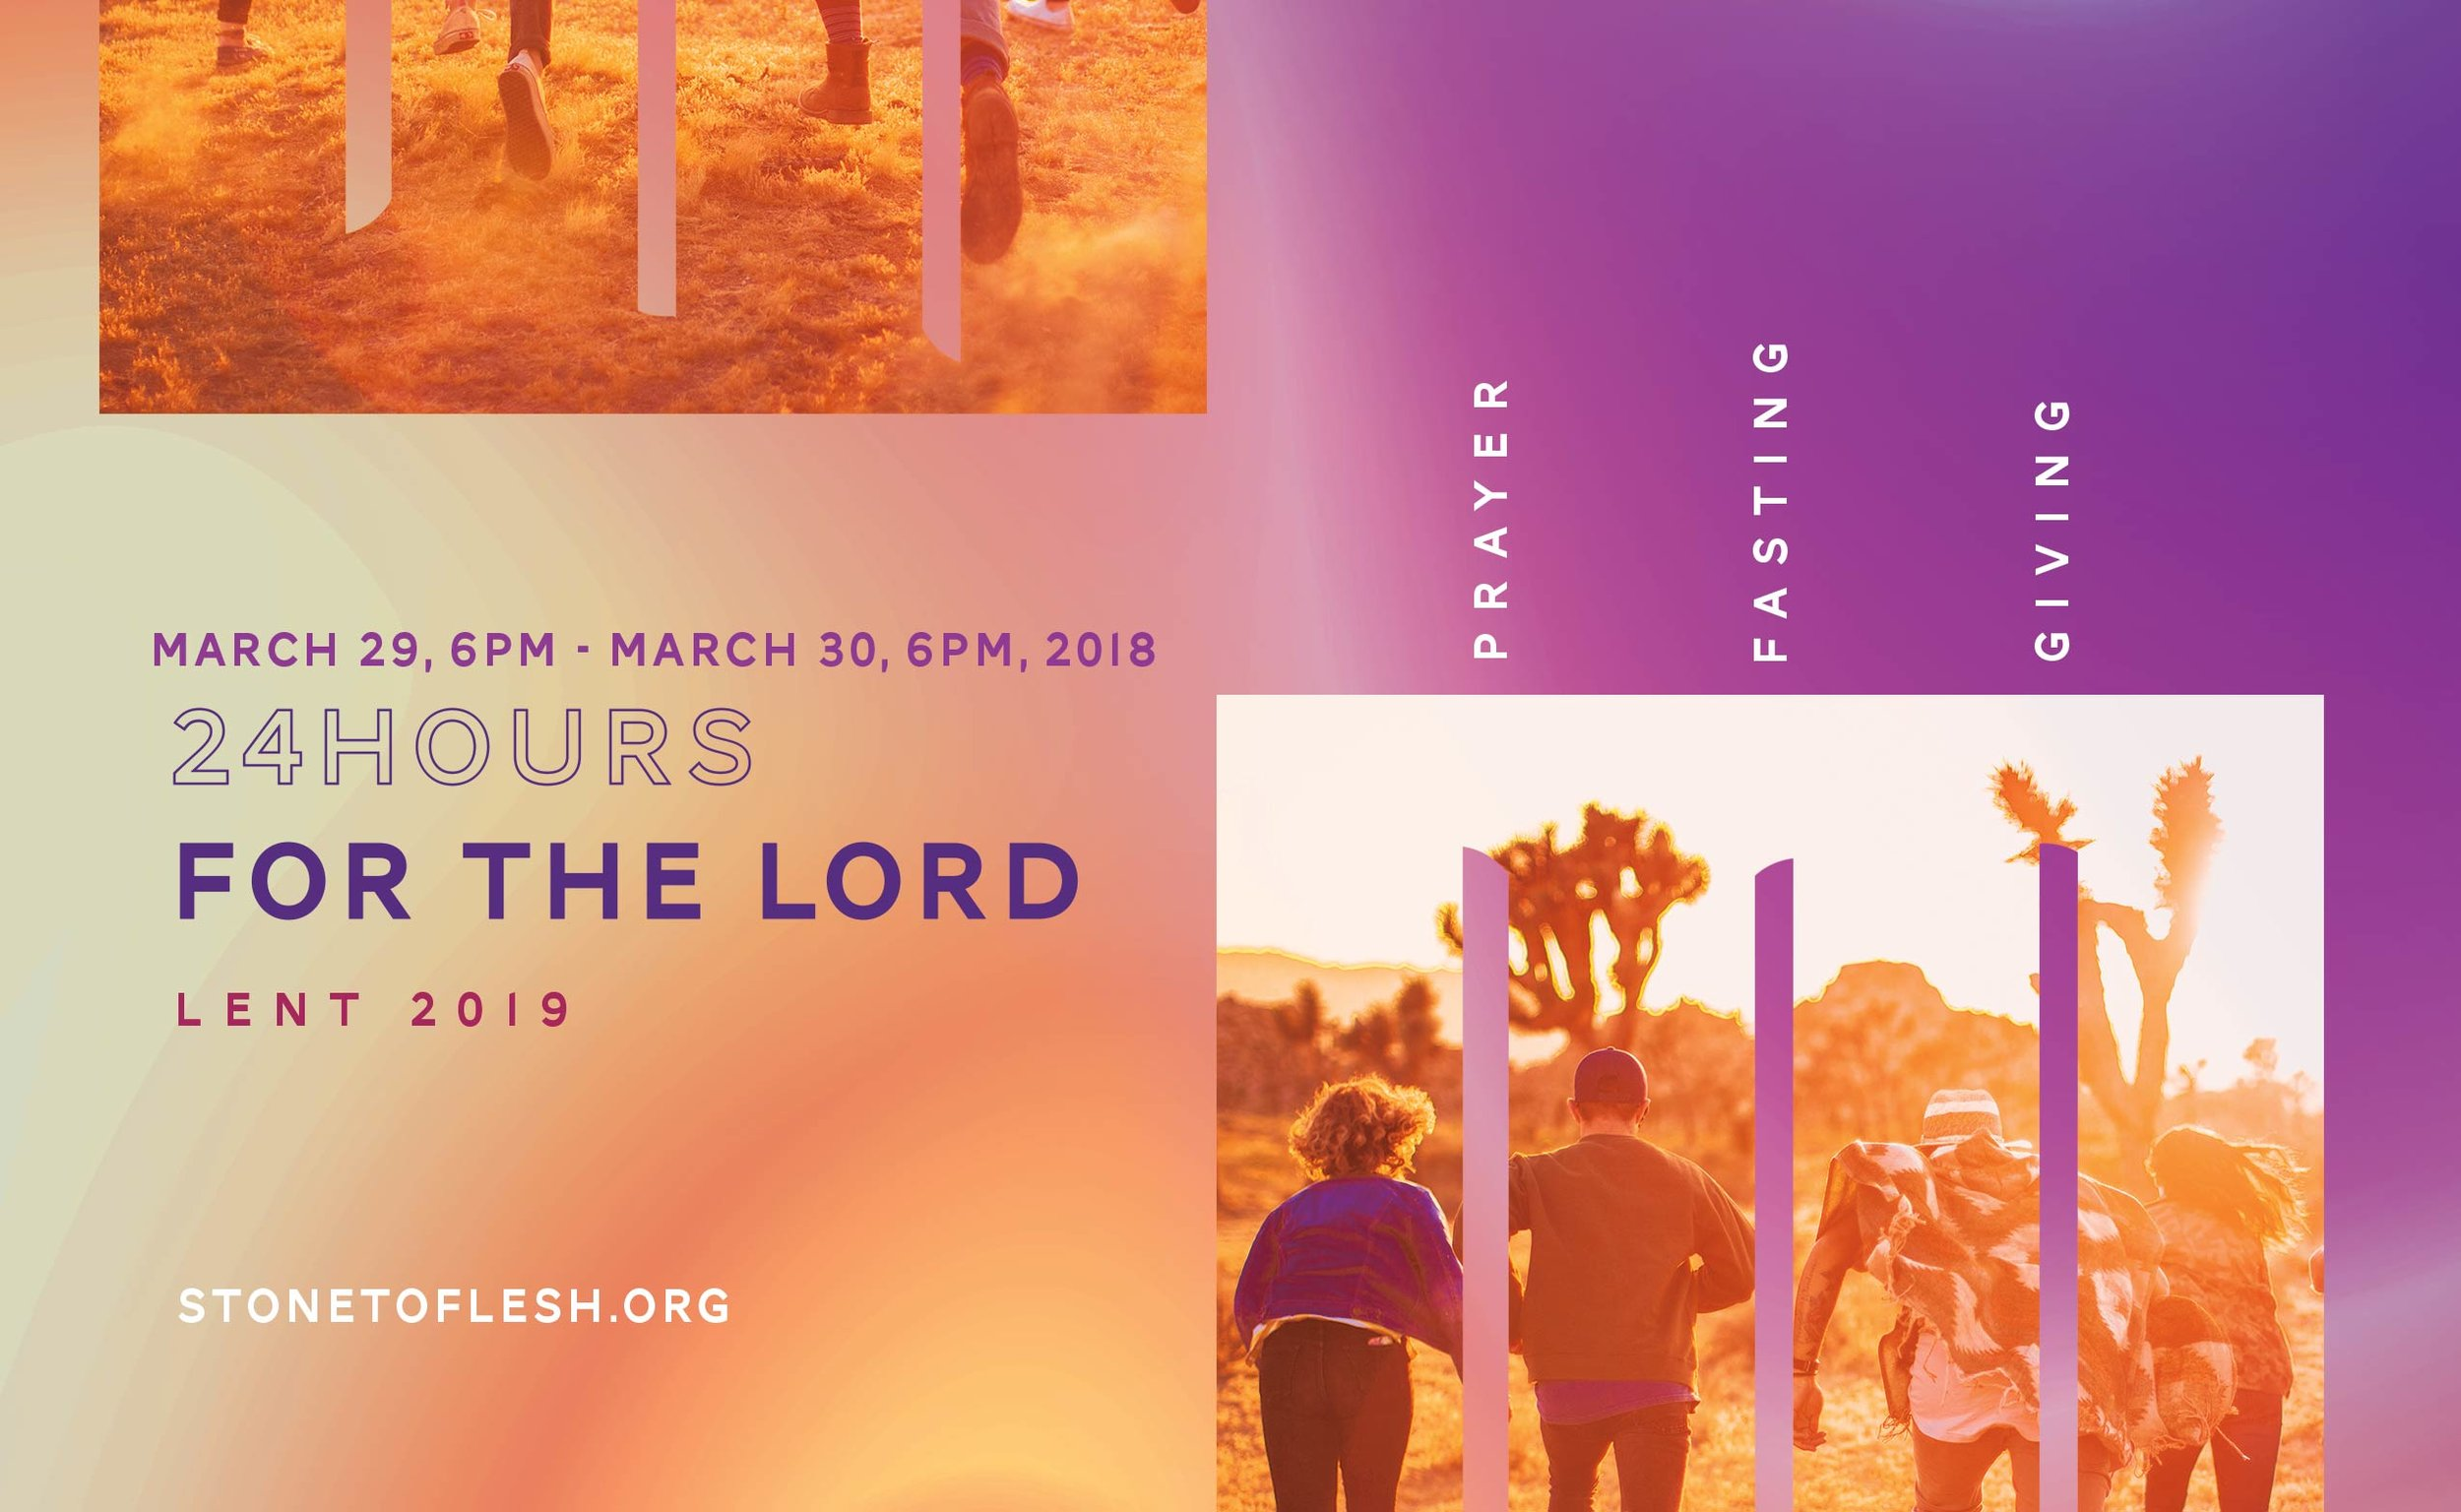 24h-for-the-Lord-fb-event.jpg